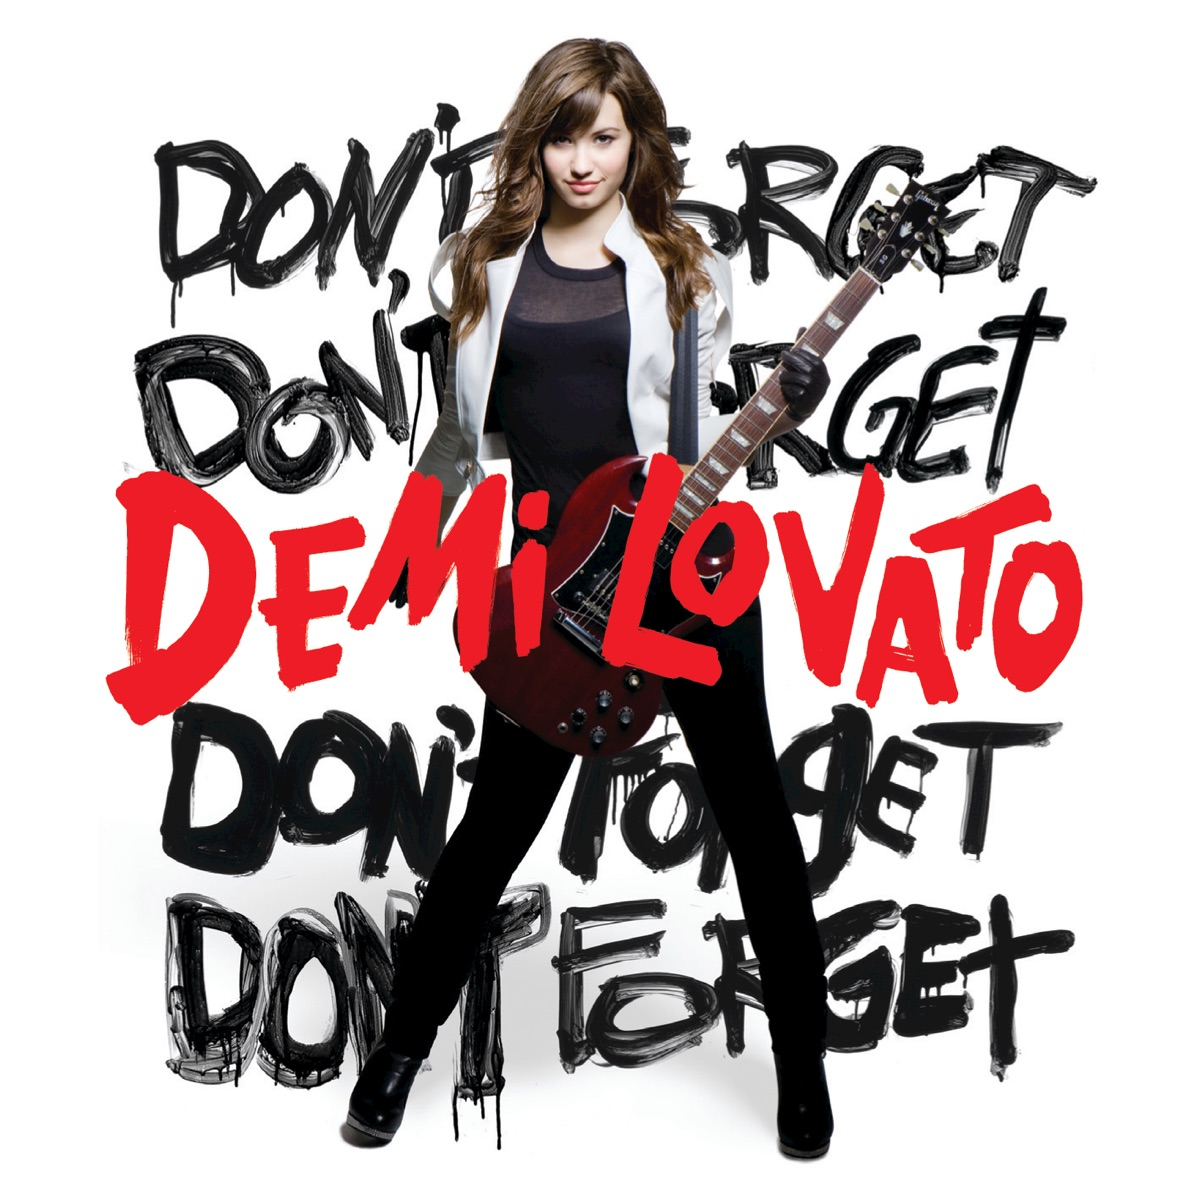 Dont Forget Demi Lovato CD cover